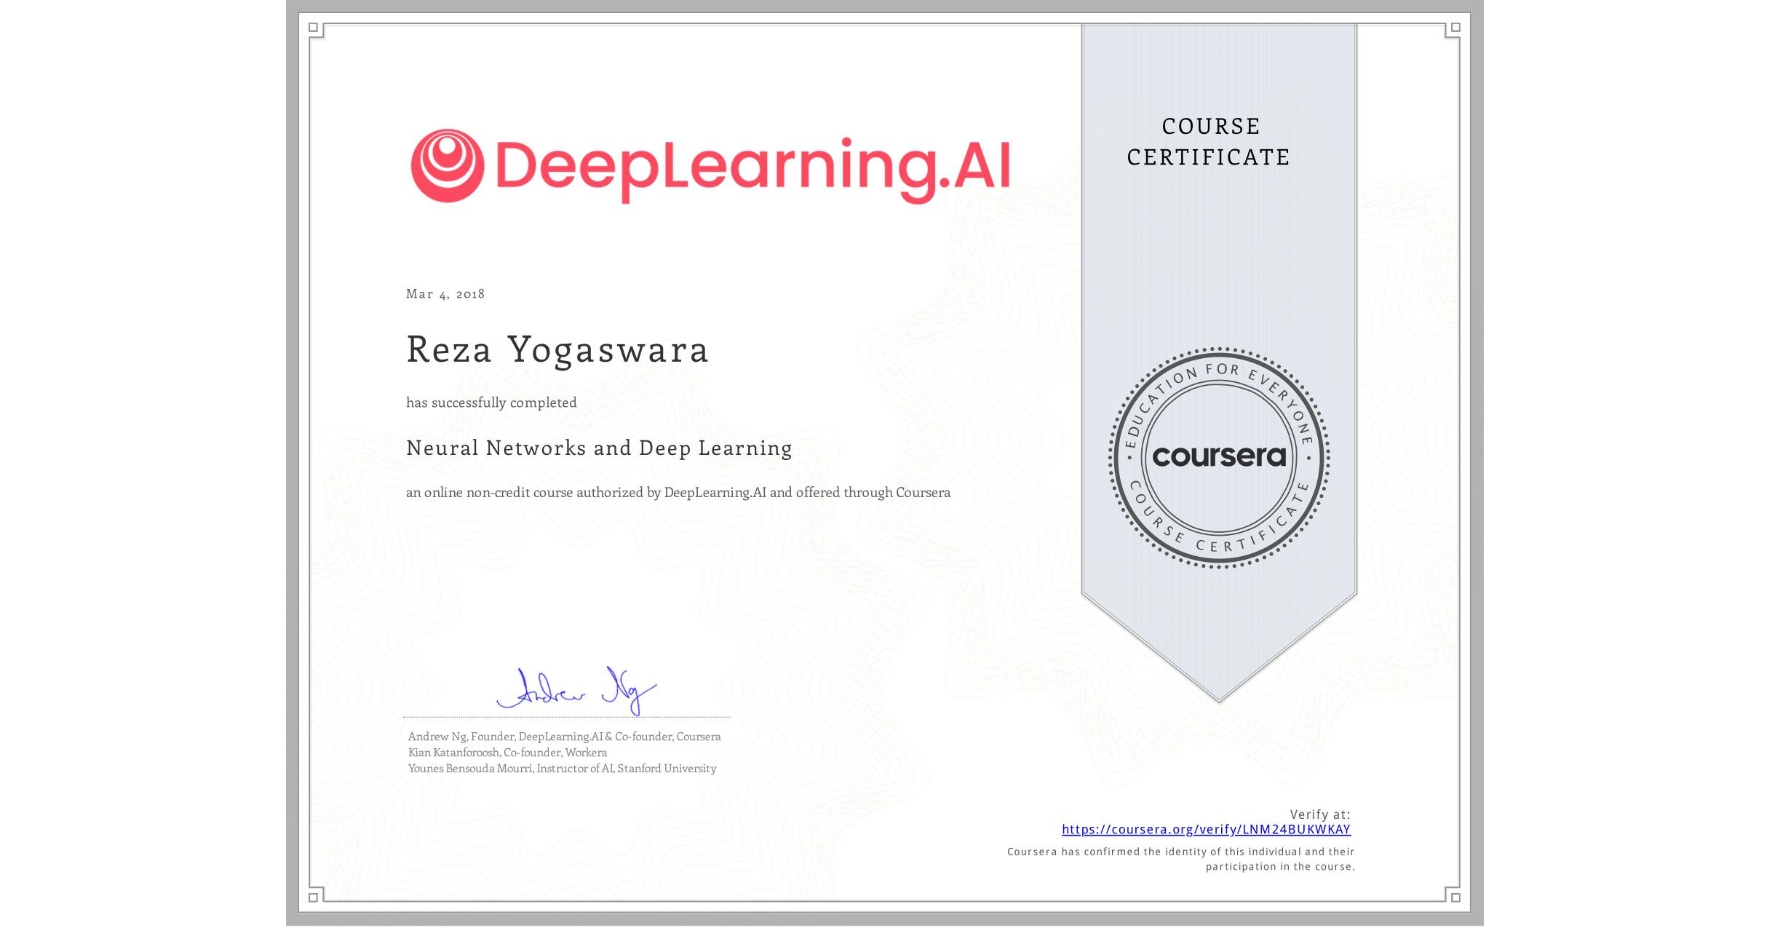 View certificate for Reza Yogaswara, Neural Networks and Deep Learning, an online non-credit course authorized by DeepLearning.AI and offered through Coursera